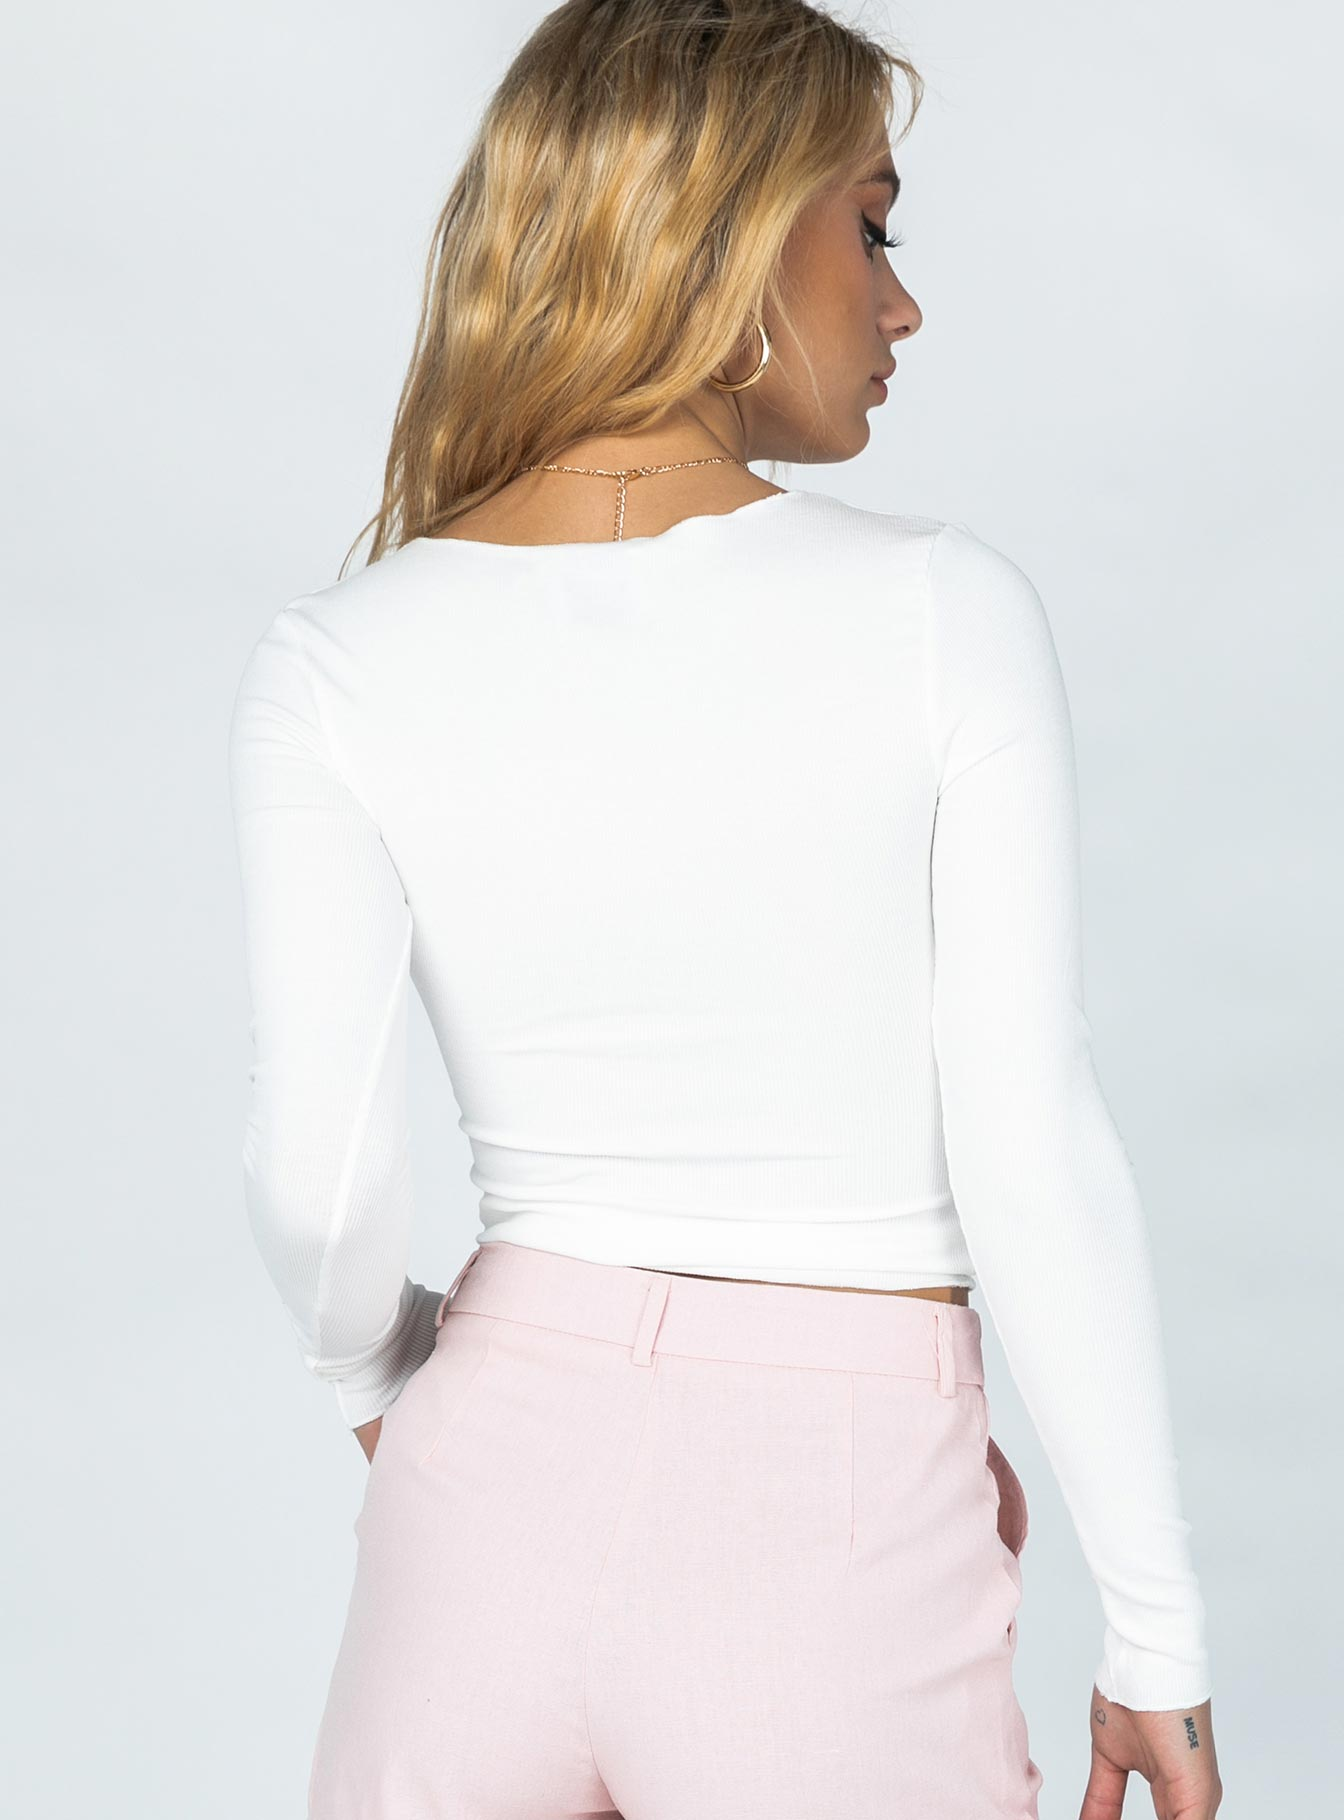 Penny Lane Ribbed Top White